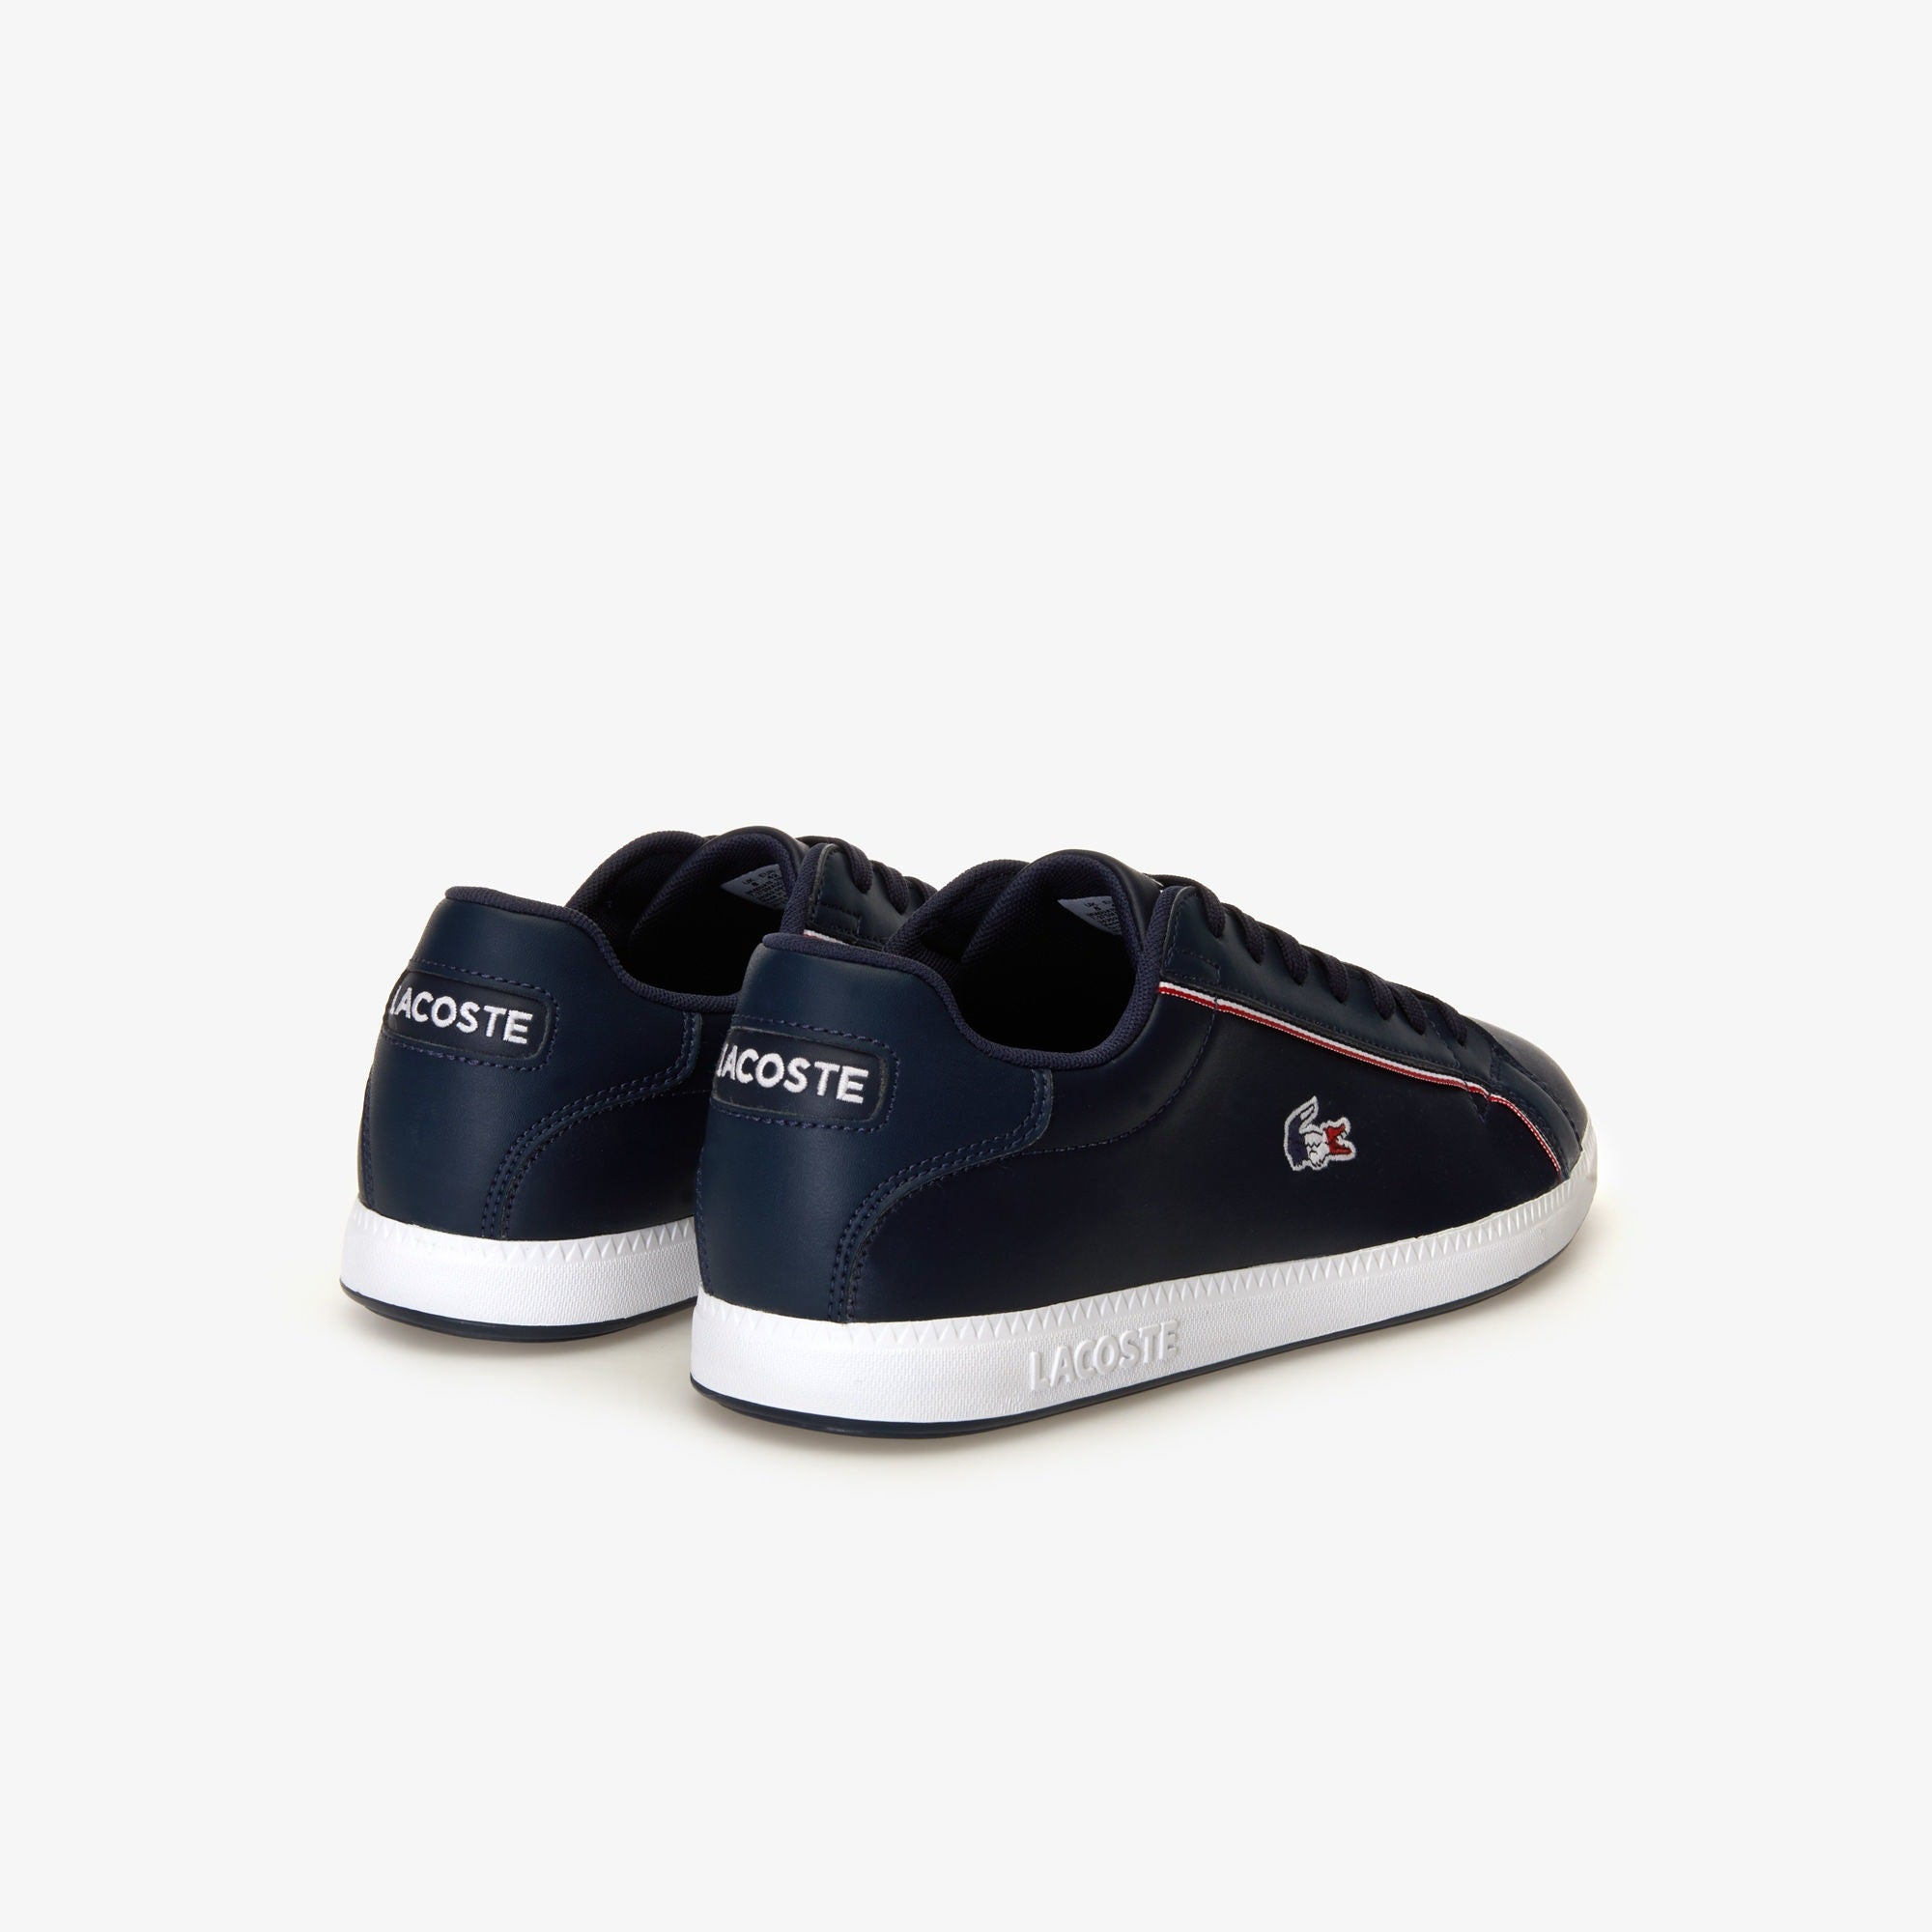 Men's Graduate 119 Leather Tricolor Sneakers (Navy/White/Red)